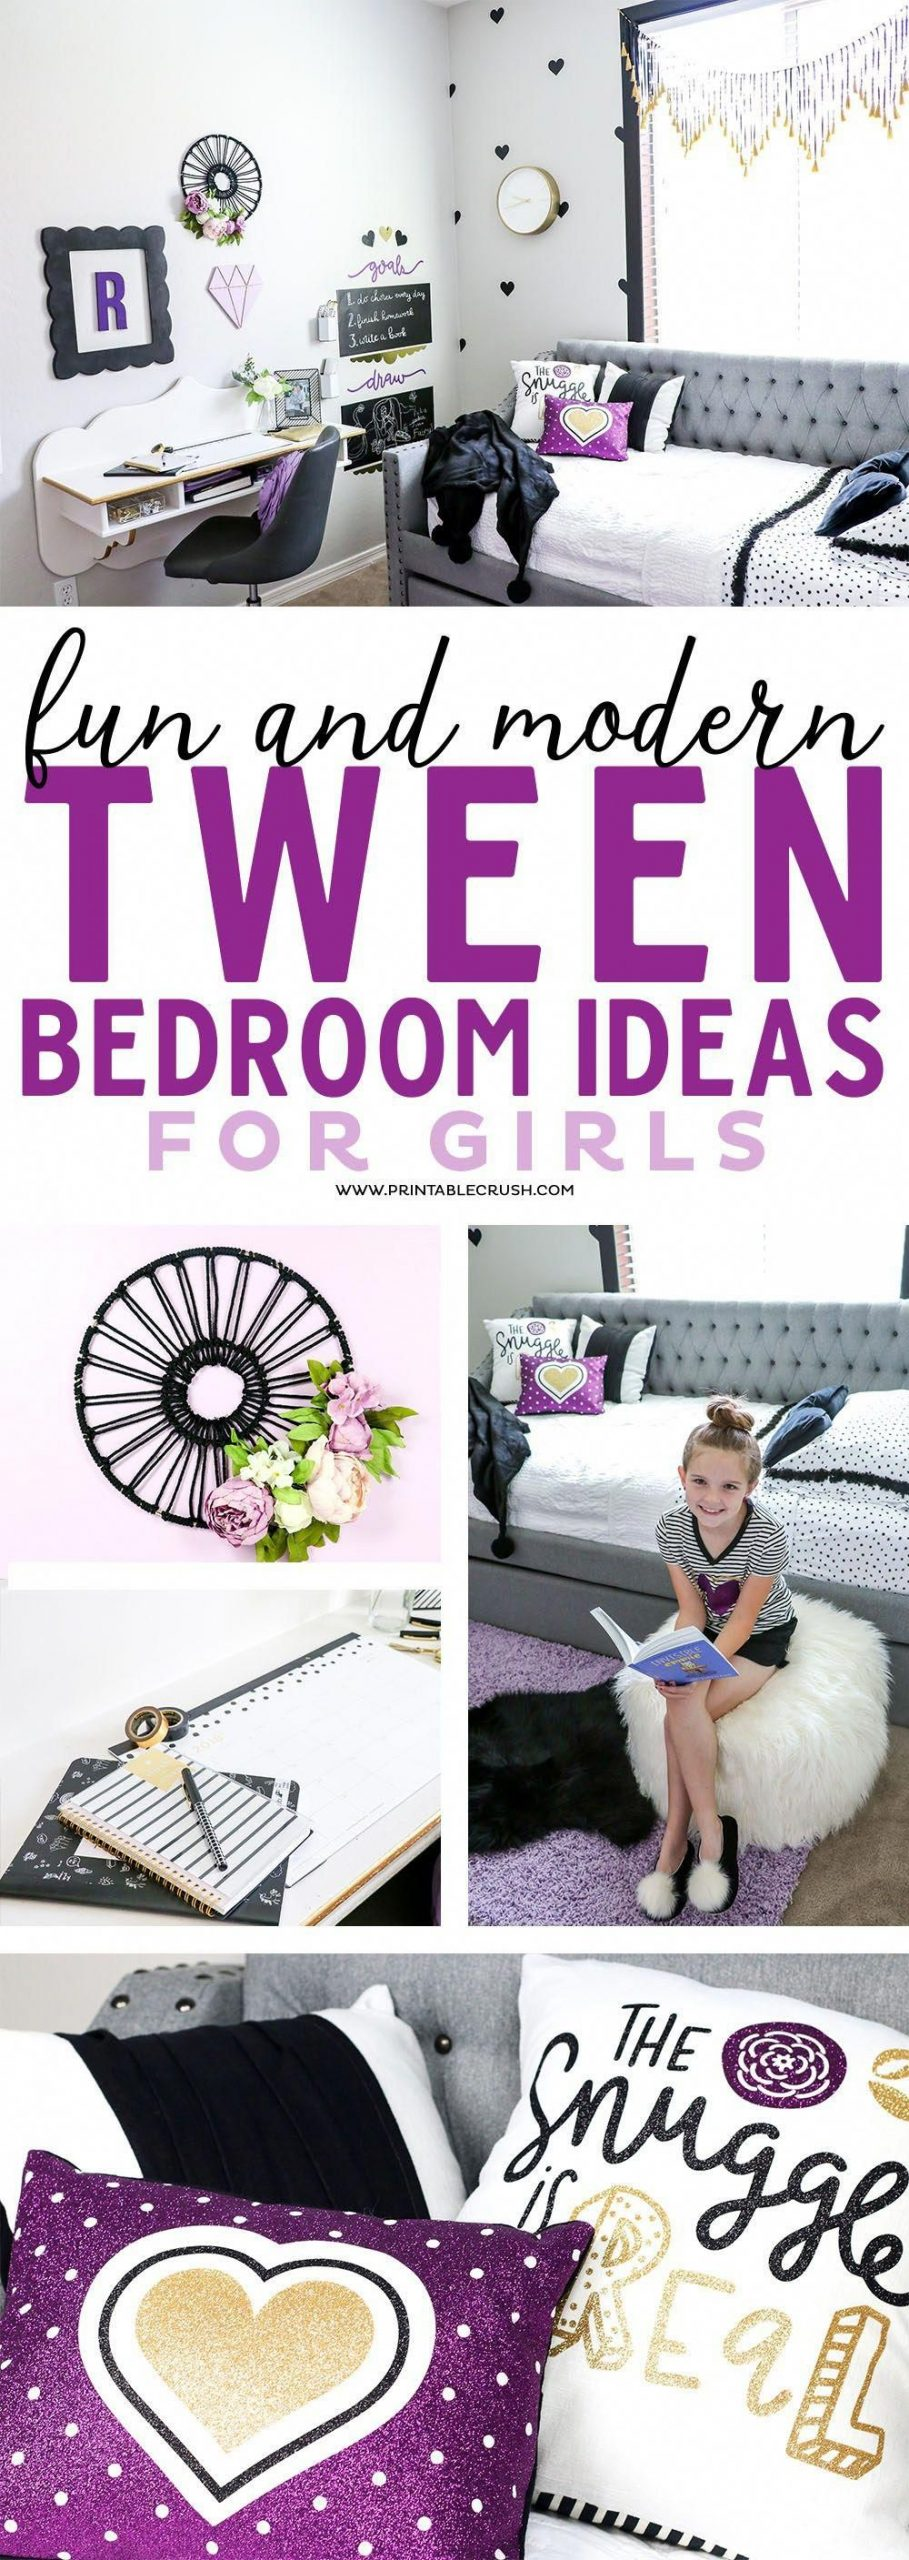 Redecorate your daughters bedroom with these fun and modern tween bedroom ideas!...